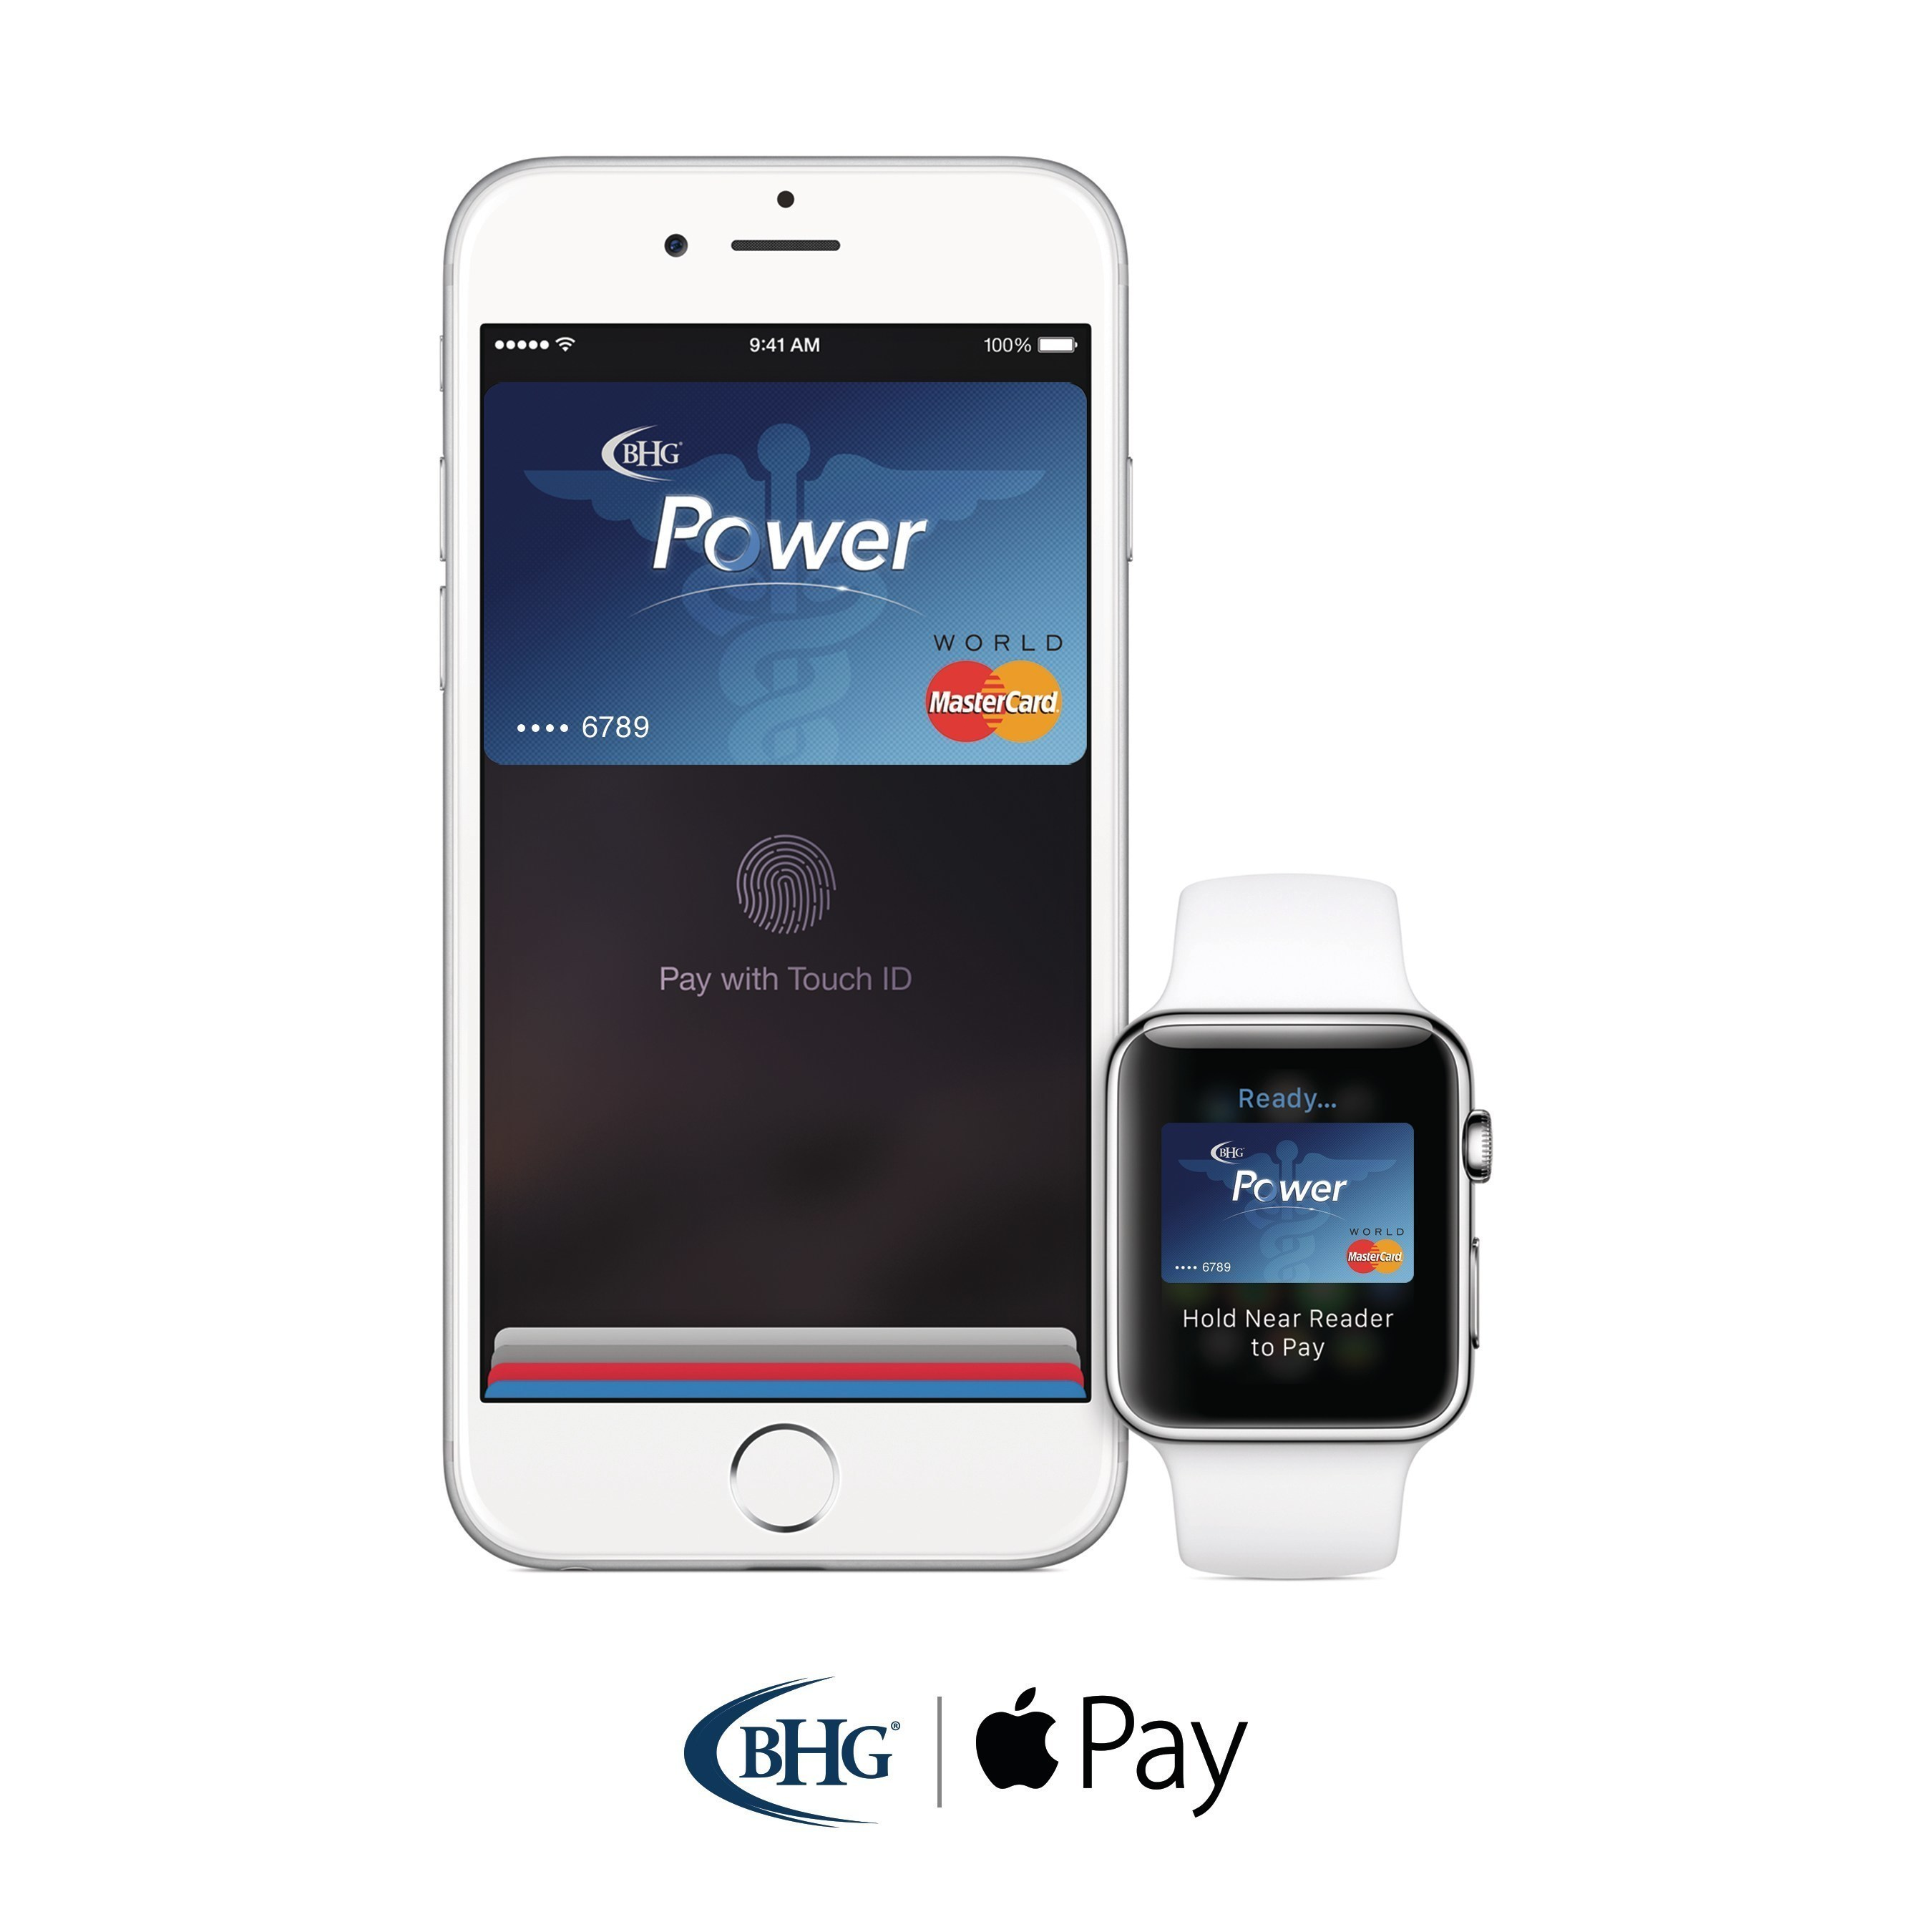 Bankers Healthcare Group Announces Apple Pay For The BHG Power MasterCard'